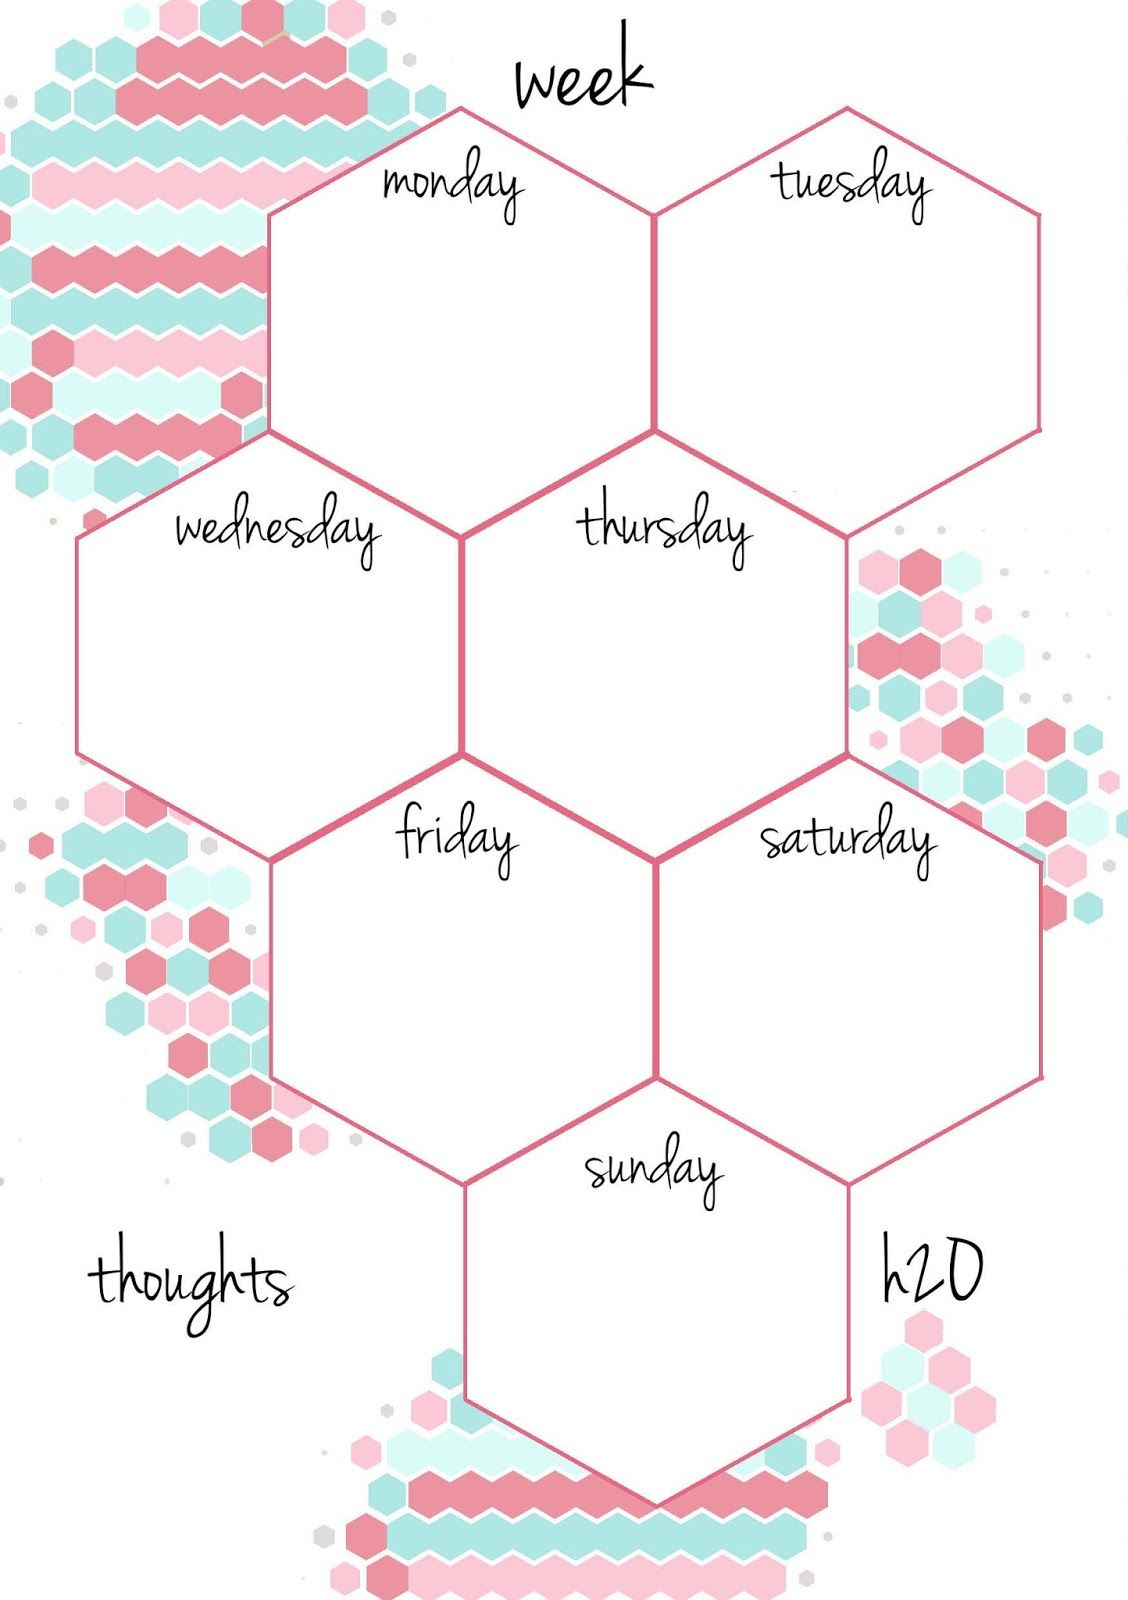 Pb And J Studio: Free Printable Planner Inserts Candy Hexagon In A5 - Free Printable Agenda 2017